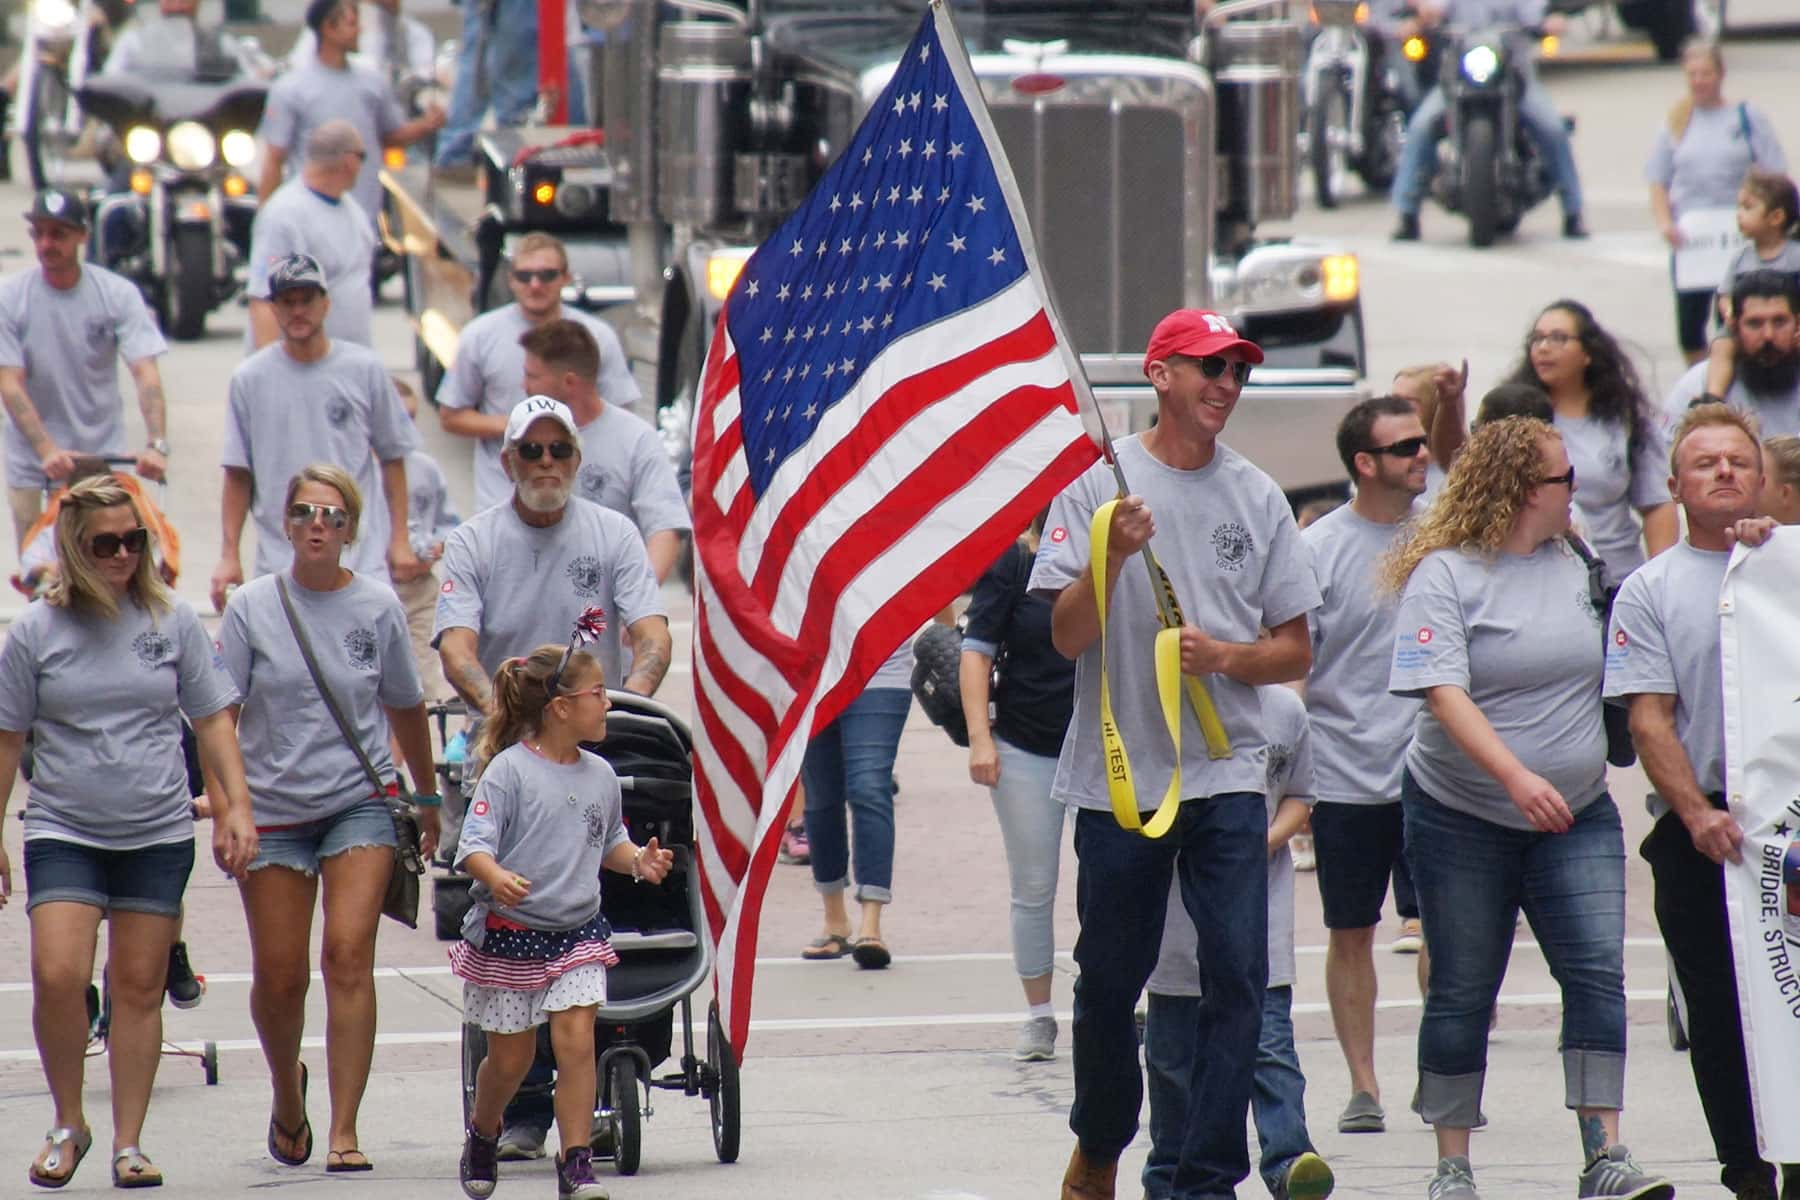 03_090417_labordayparade_0822